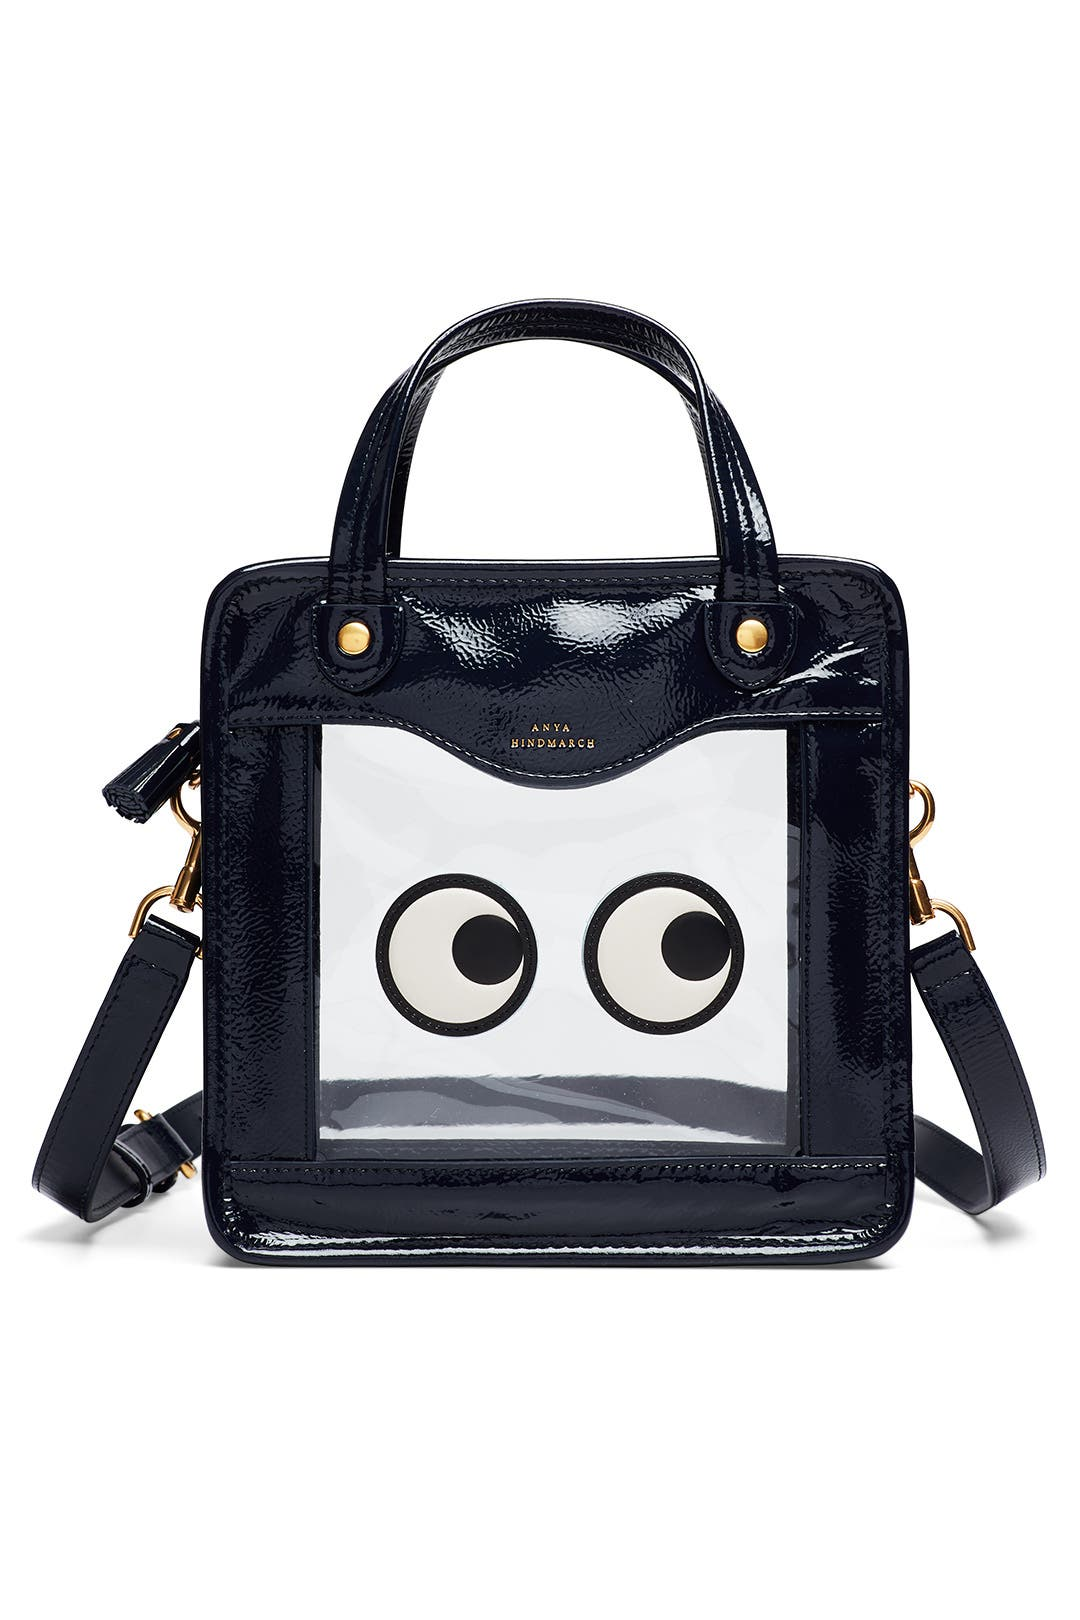 rainy day eyes bag - Blue Anya Hindmarch Best Seller Online 2018 Unisex In China Cheap Price Discount 2018 New Marketable wRFpqMBp8